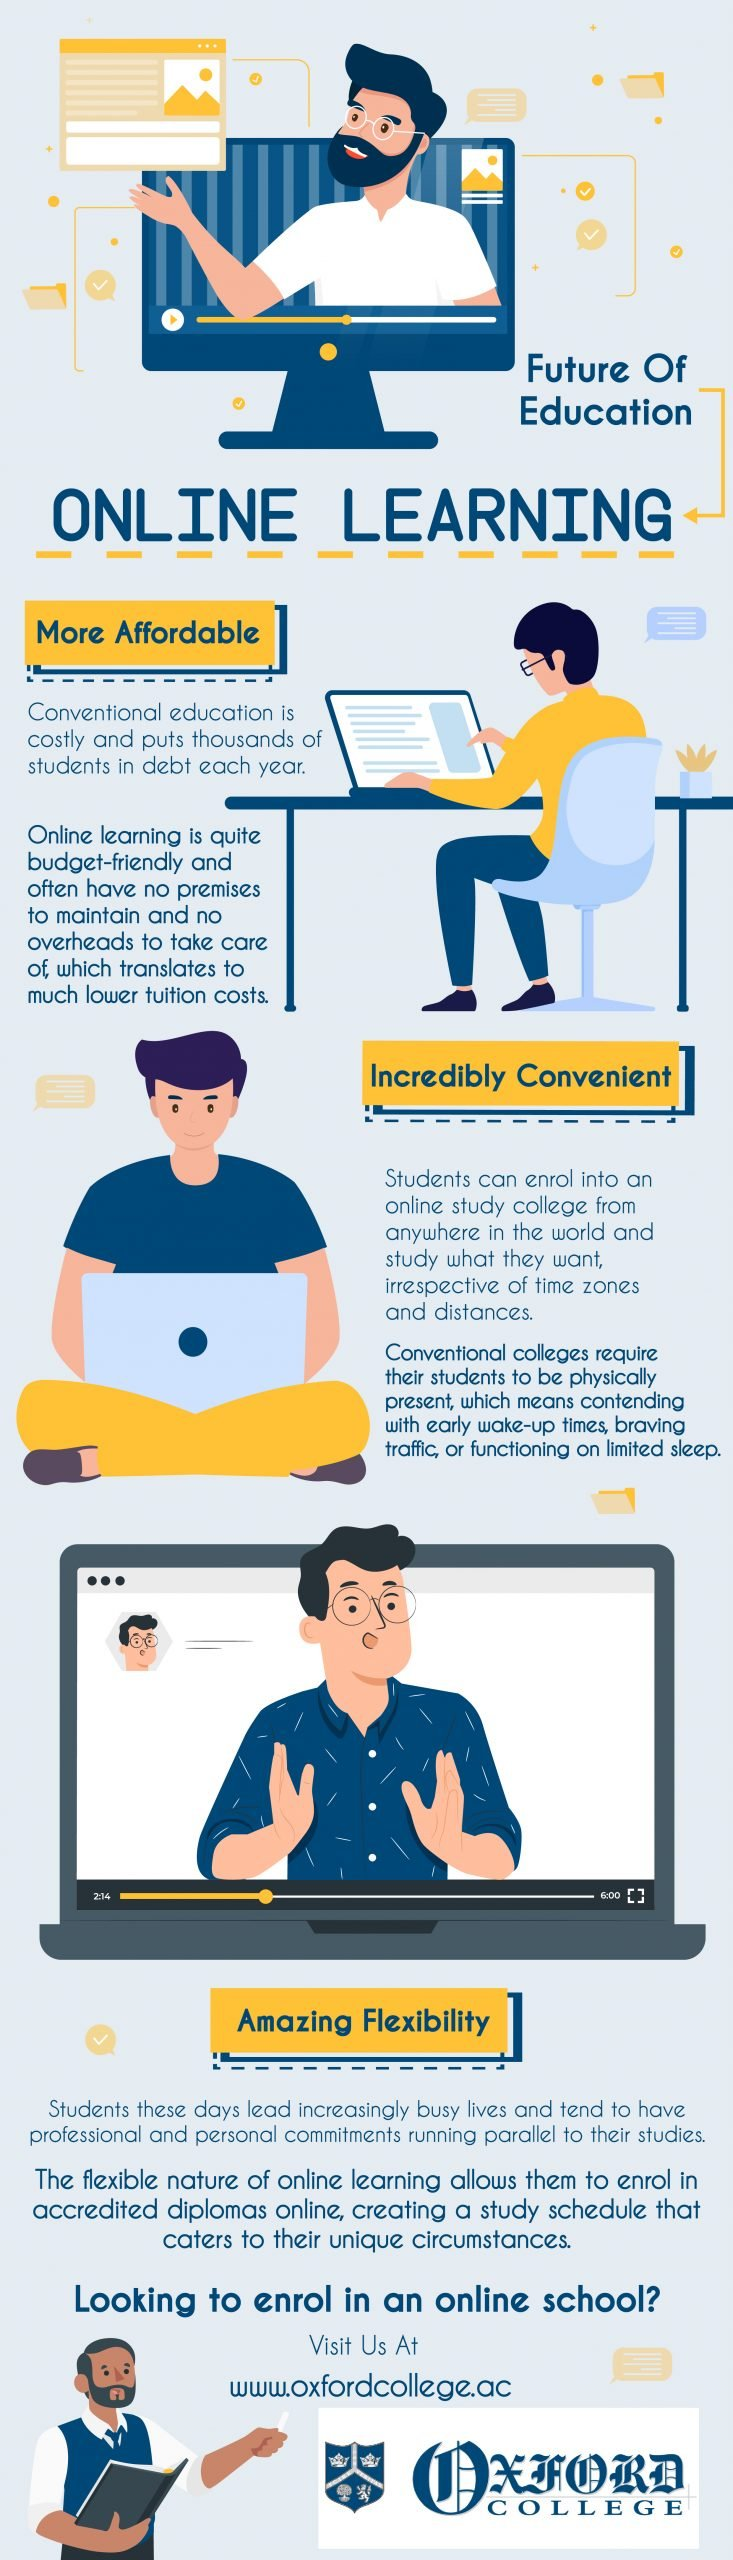 Future of education: Online Learning